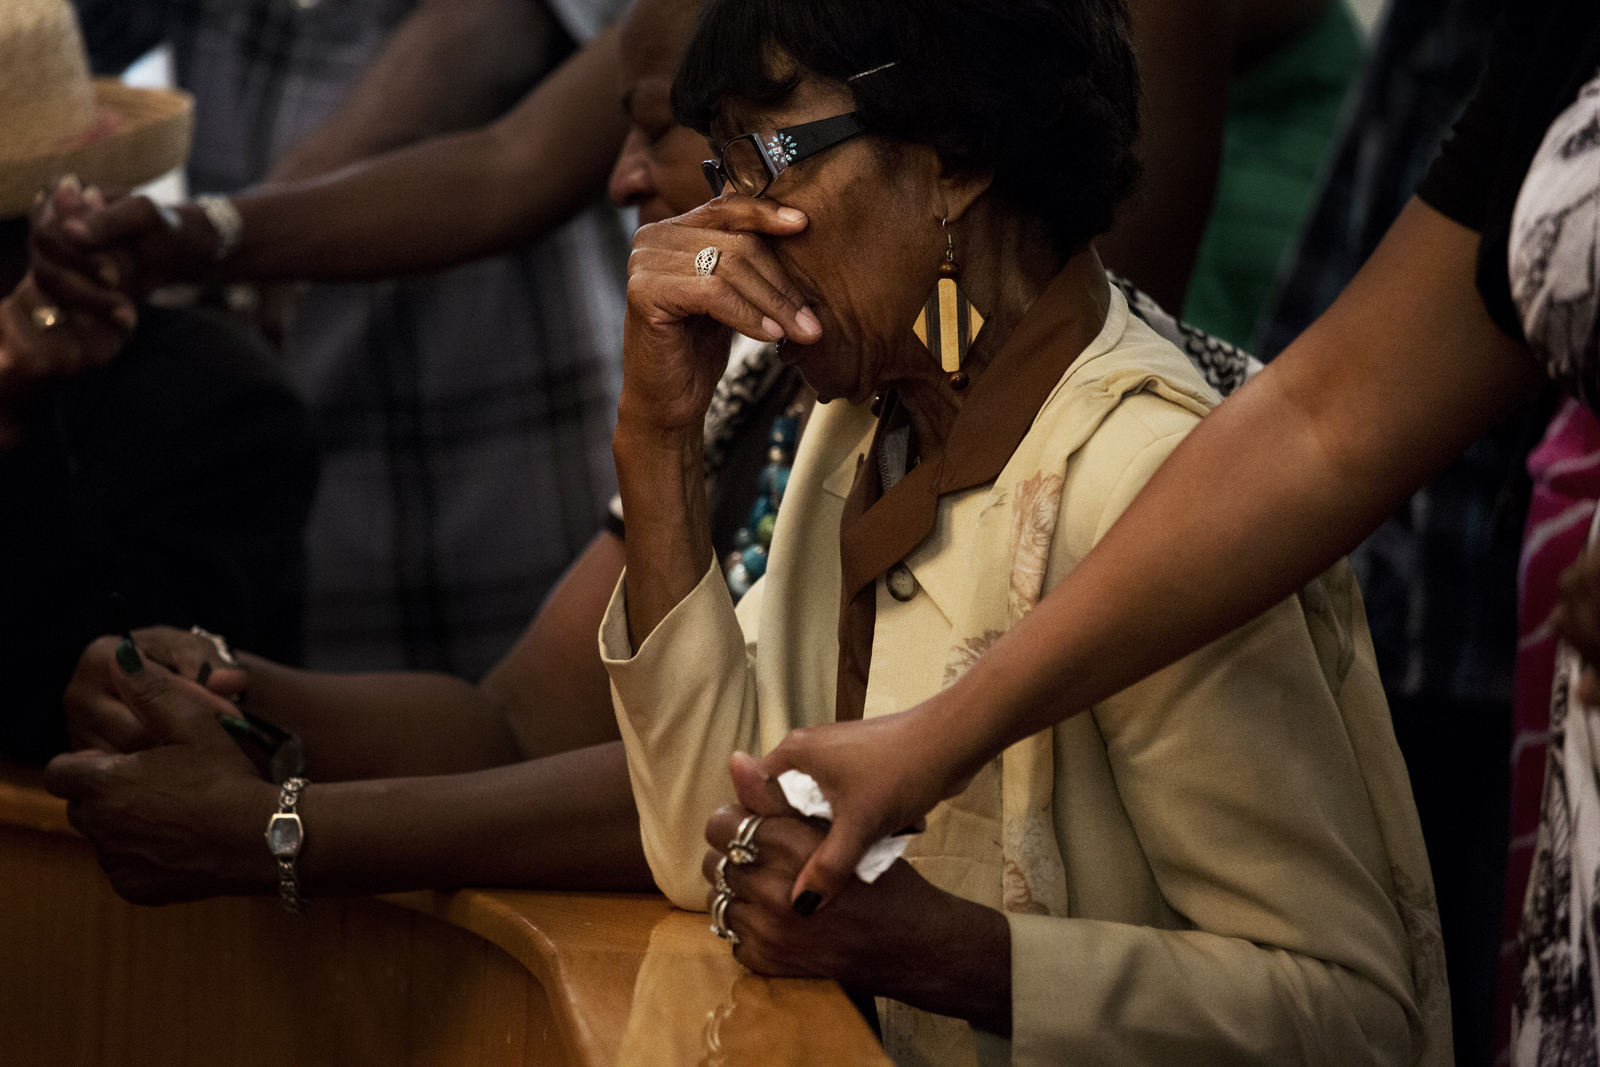 Members of the First AME congregation gather at the alter after Reverend Margaret Redmond's sermon concerning the George Zimmerman trial Sunday, July 14 2013.